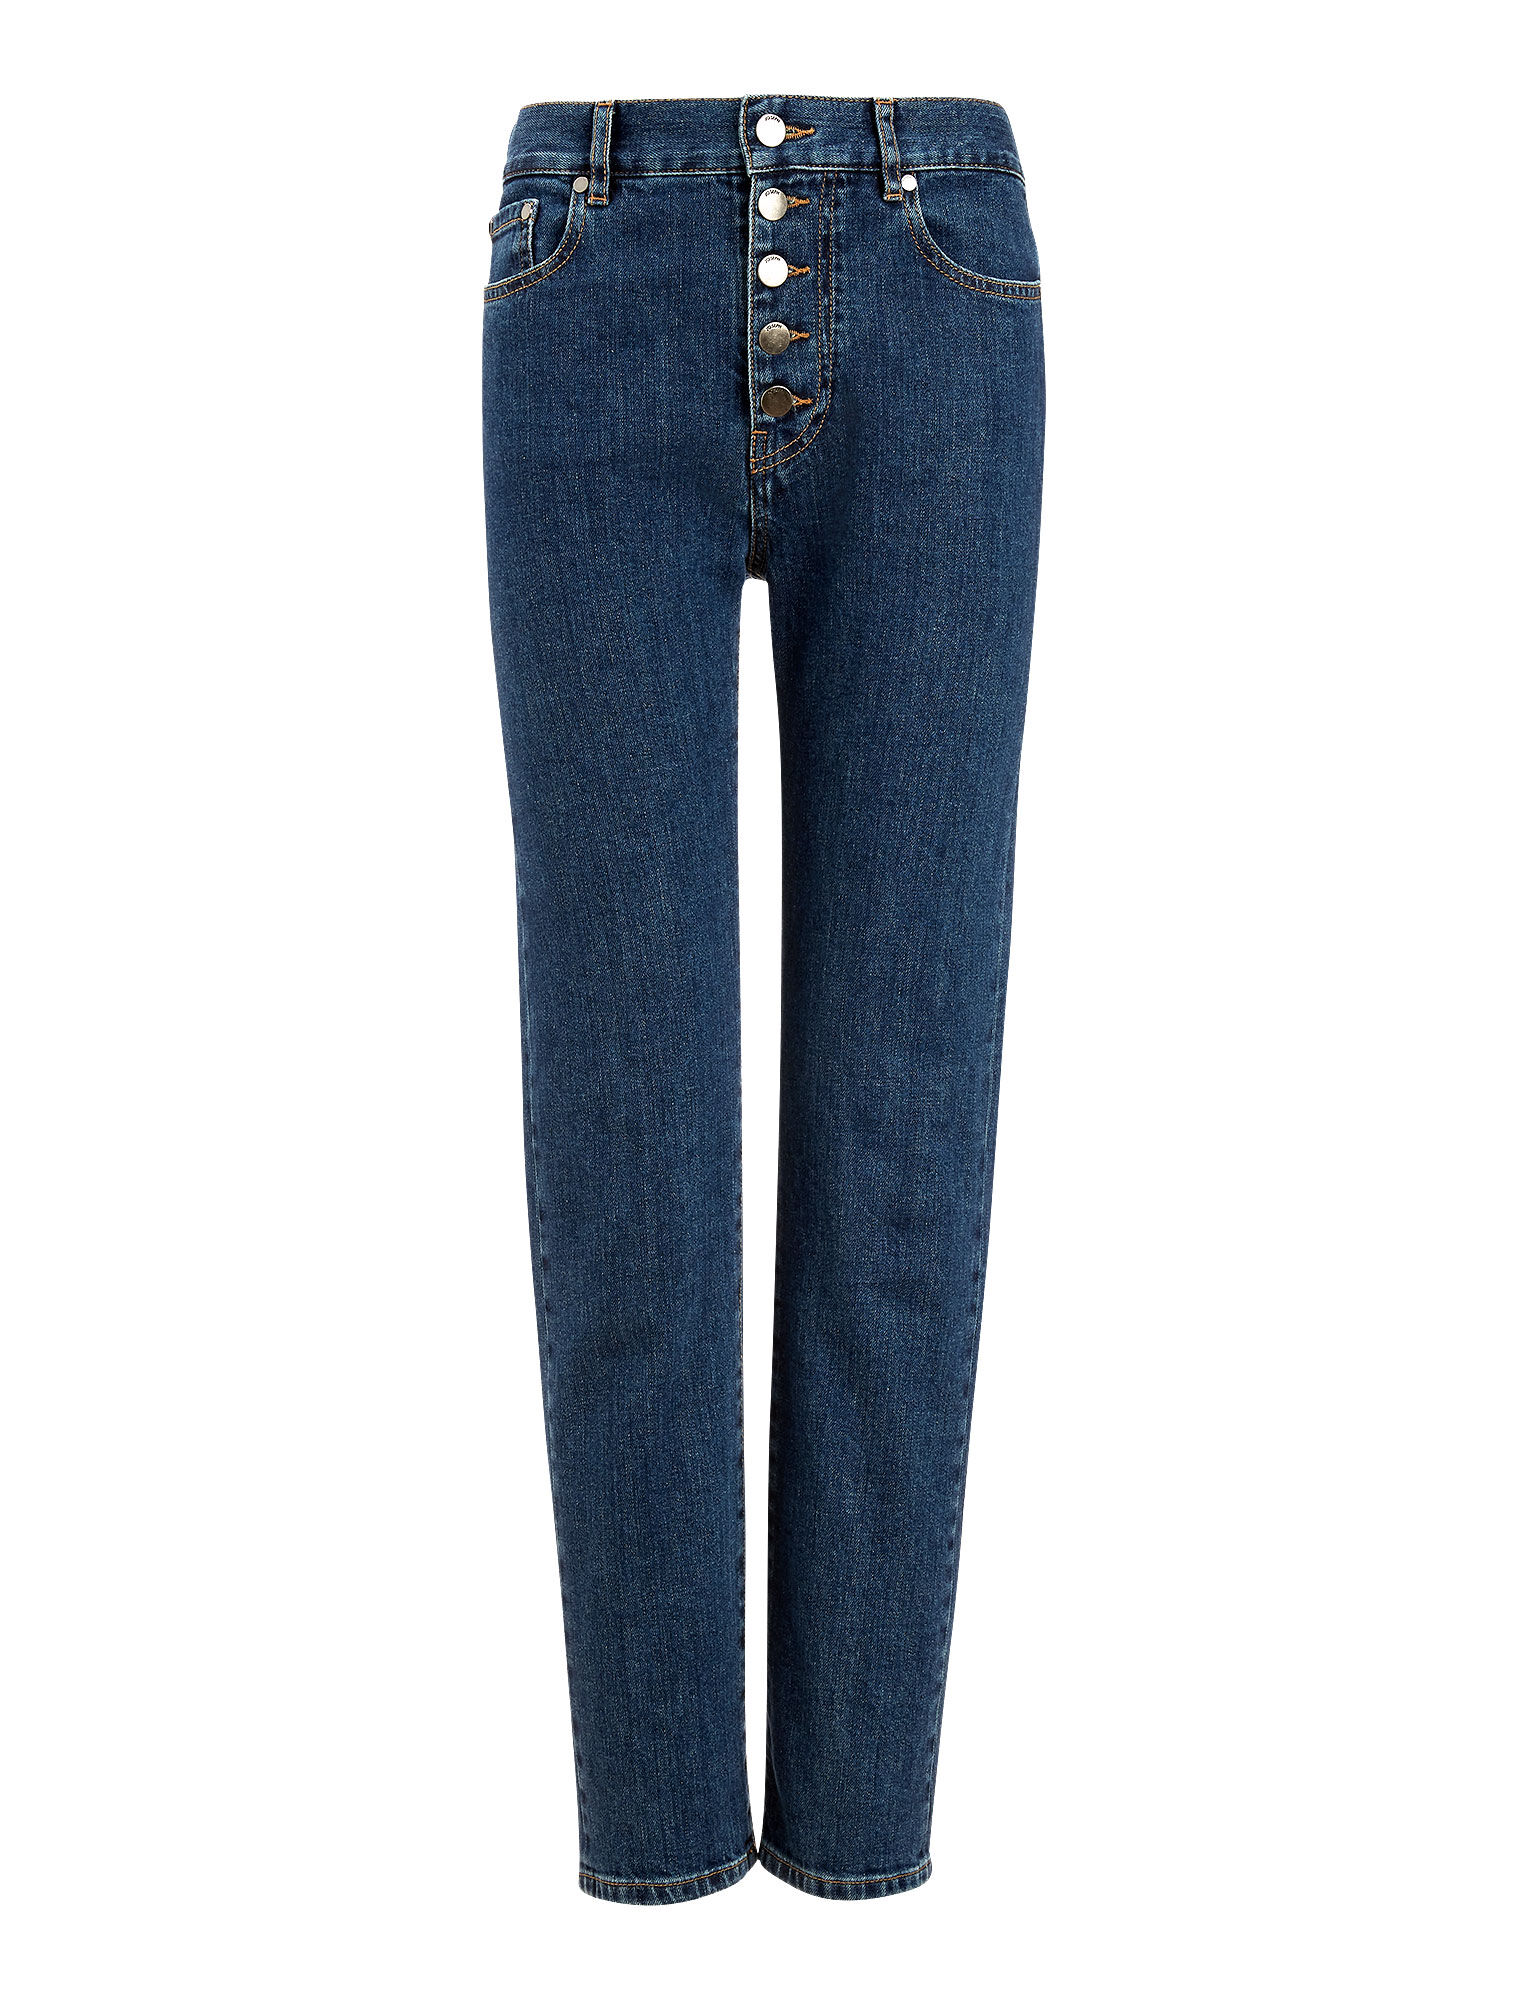 Joseph, Den Denim Stretch Trousers, in AUTHENTIC BLUE